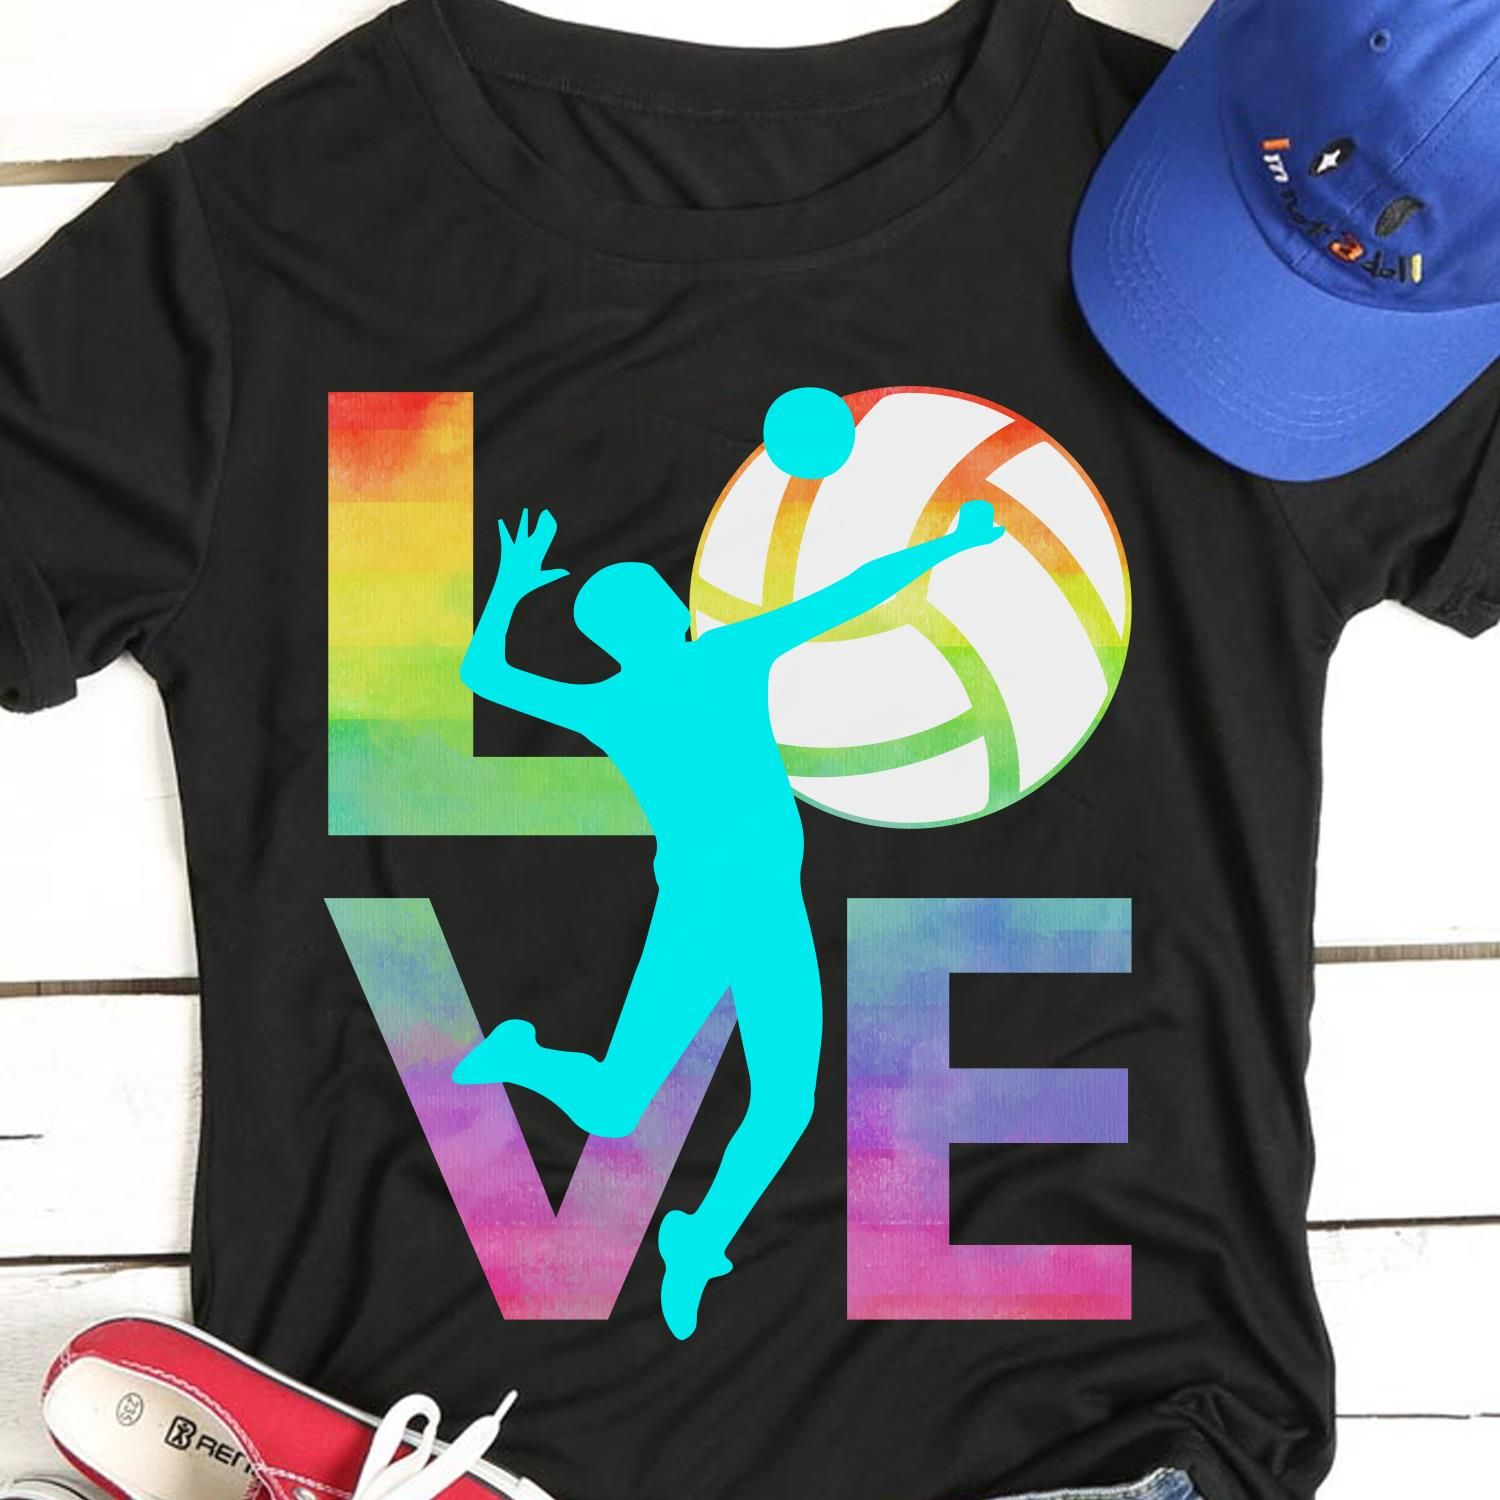 Love Volleyball Great Gifts For Volleyball Players Volleyball Lovers Mom Dad Son Daughter Sister Brother Aunt Great T Shirts Volleyball Tshirts T Shirt